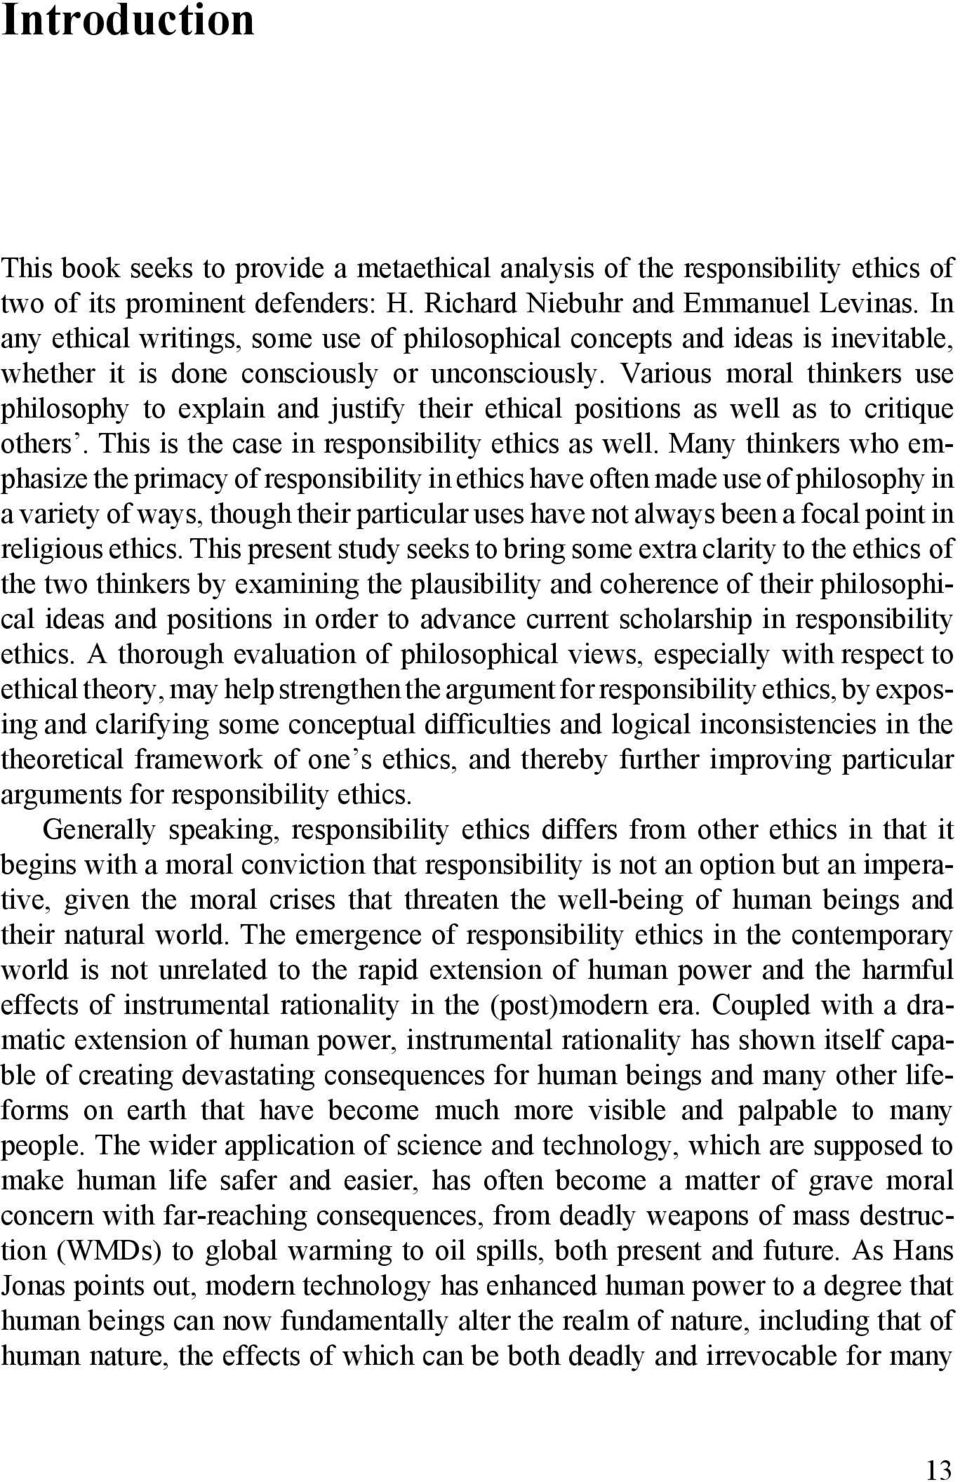 Various moral thinkers use philosophy to explain and justify their ethical positions as well as to critique others. This is the case in responsibility ethics as well.